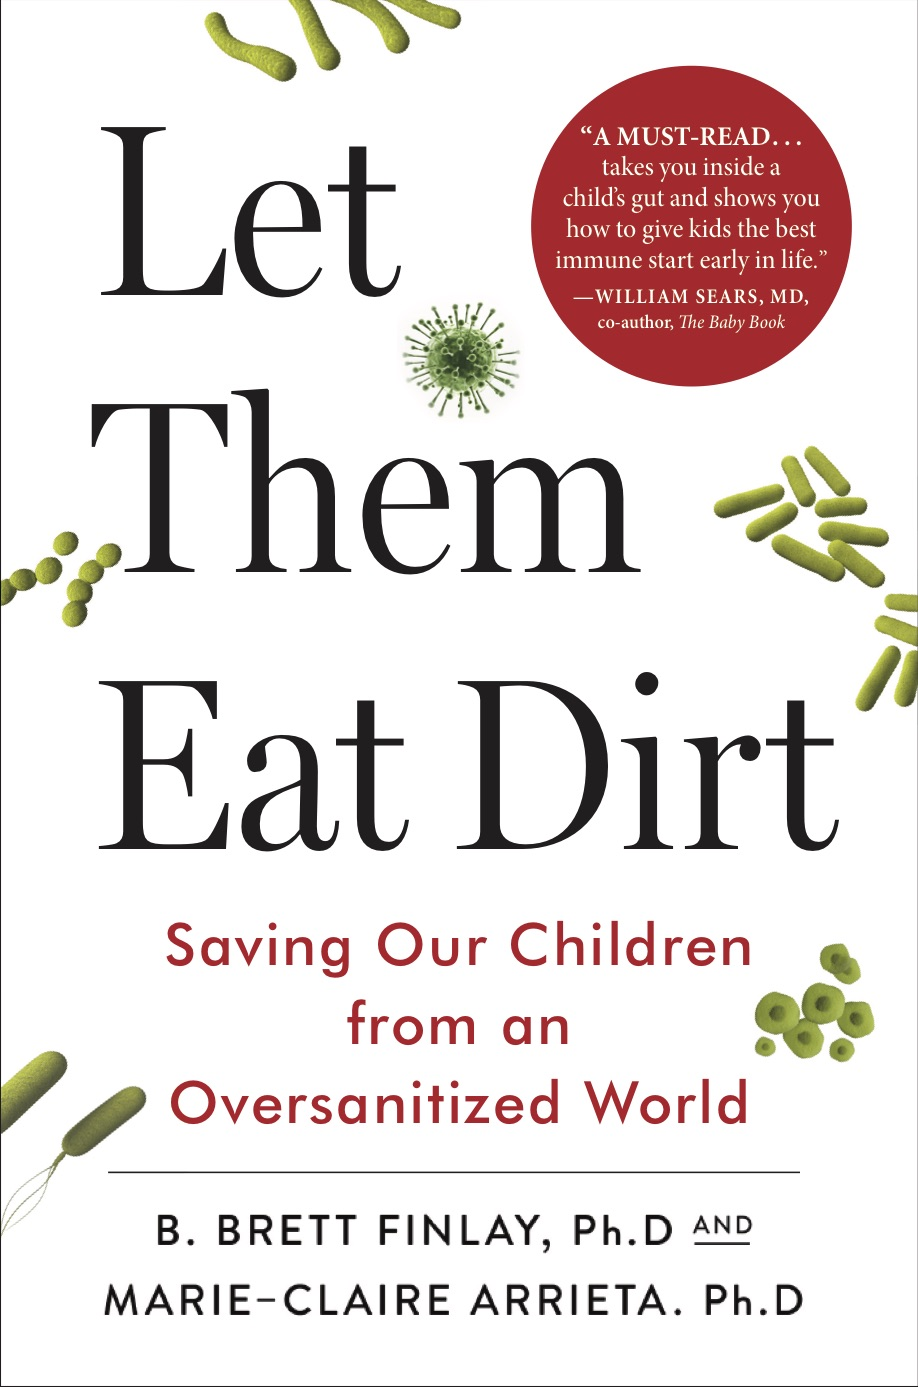 Finley_Arrieta_Let-Them-Eat-Dirt12-copy.jpg